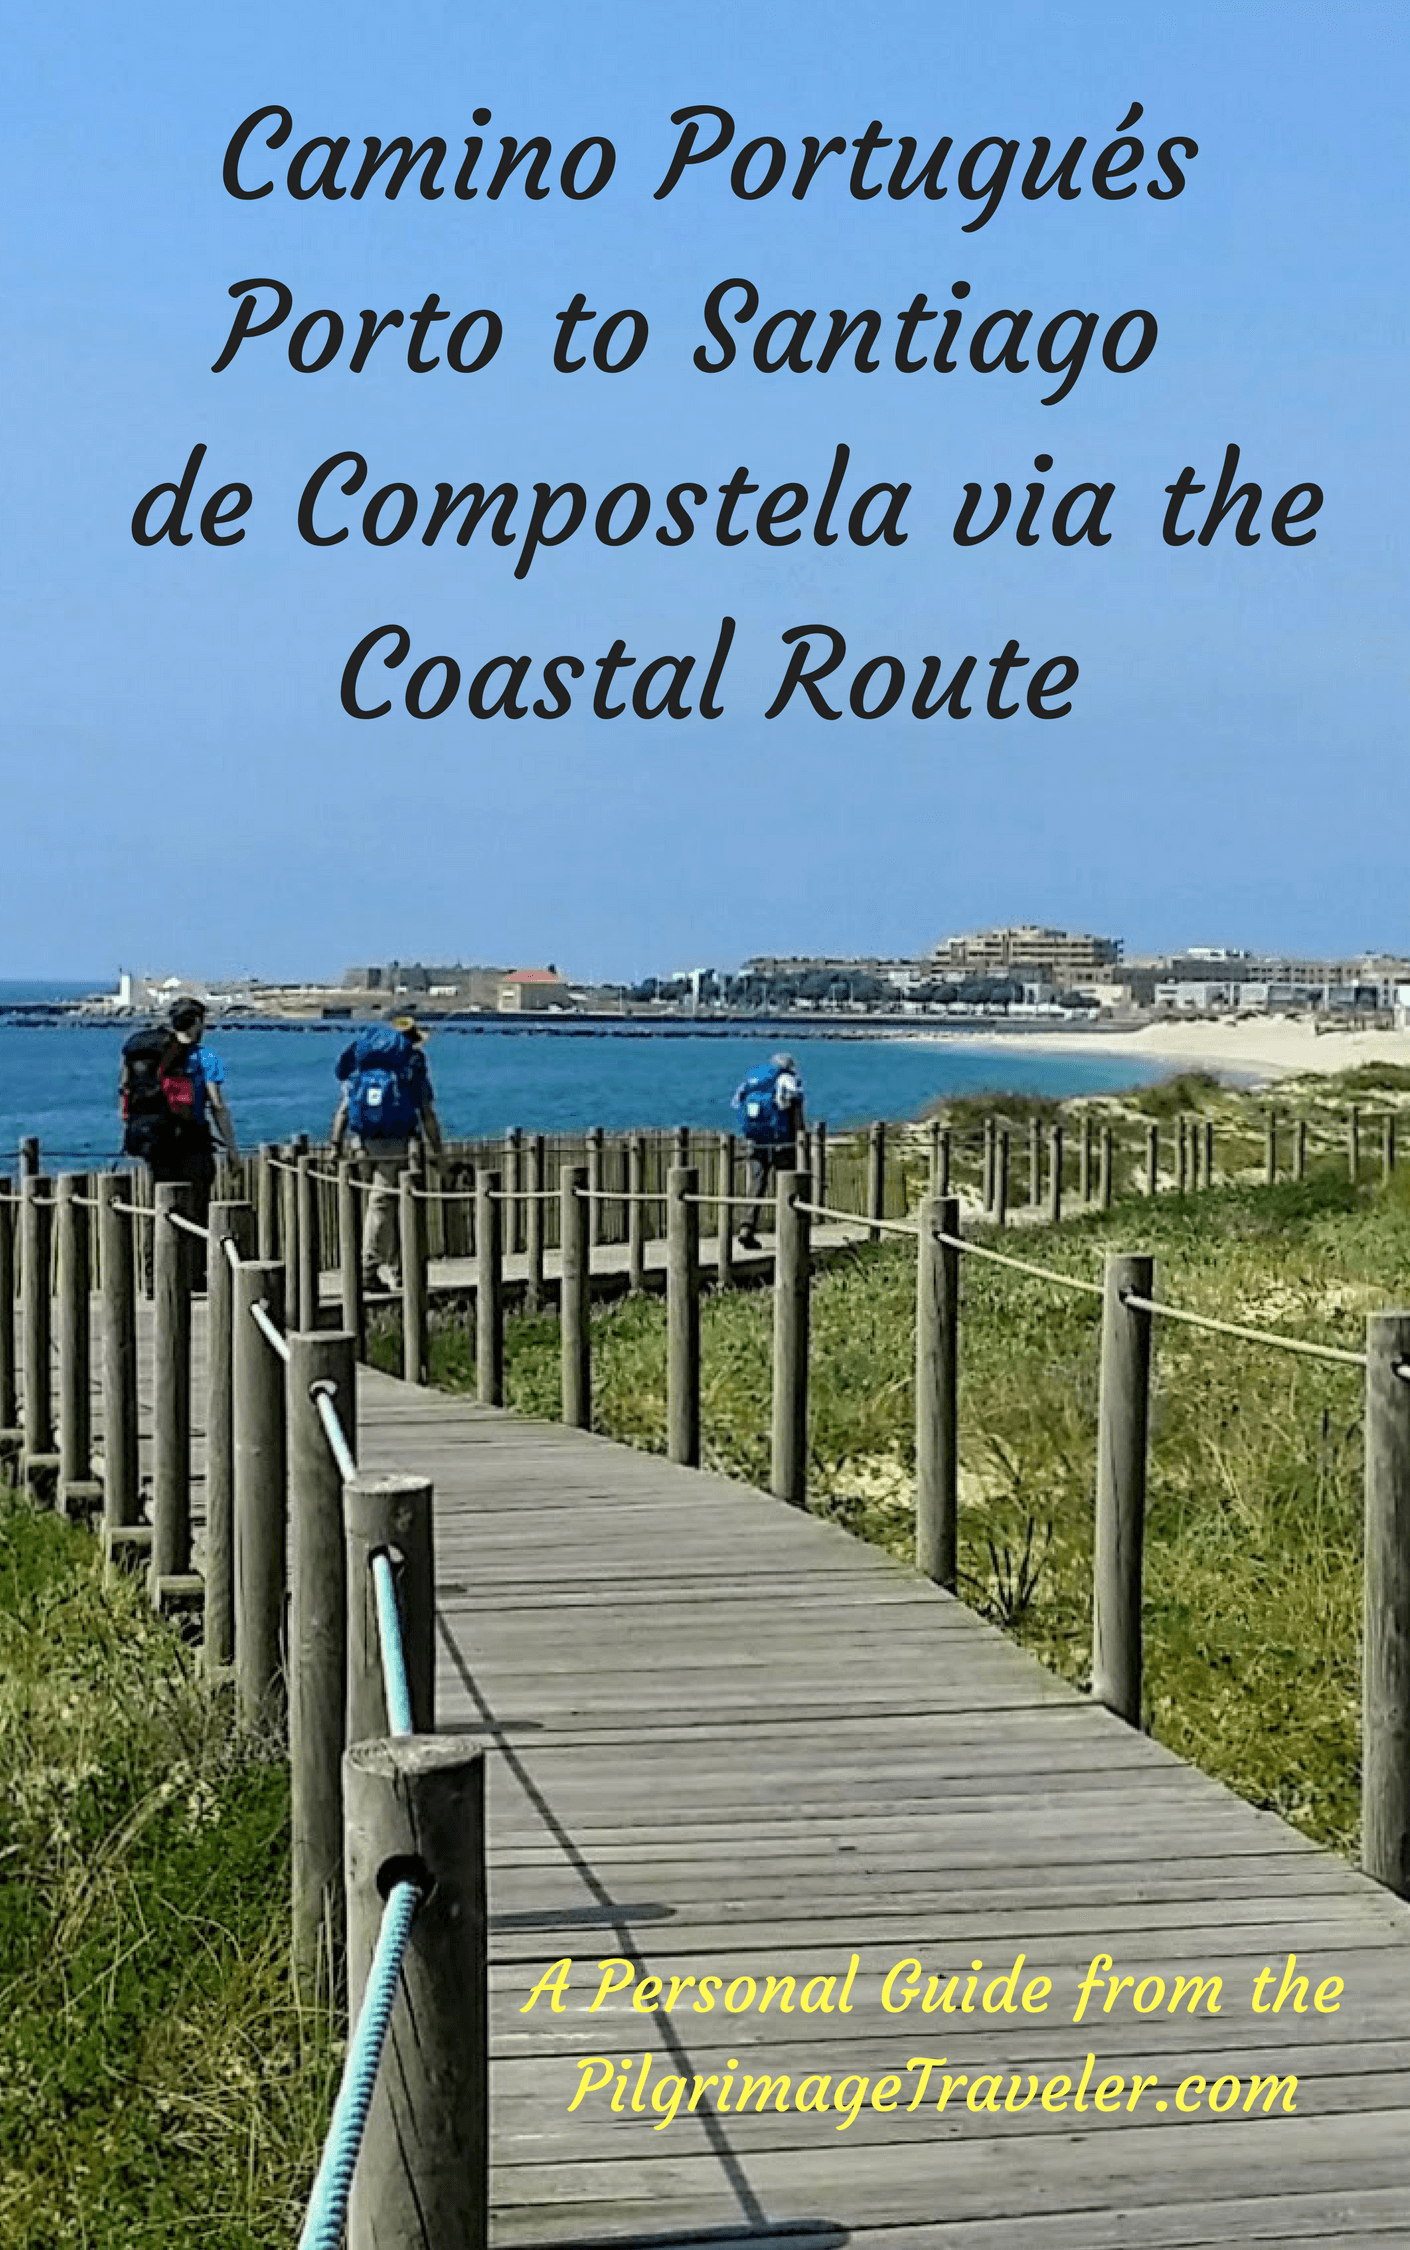 Camino Portugués Guide, Porto to Santiago de Compostela, Coastal Route, Downloadable EBook